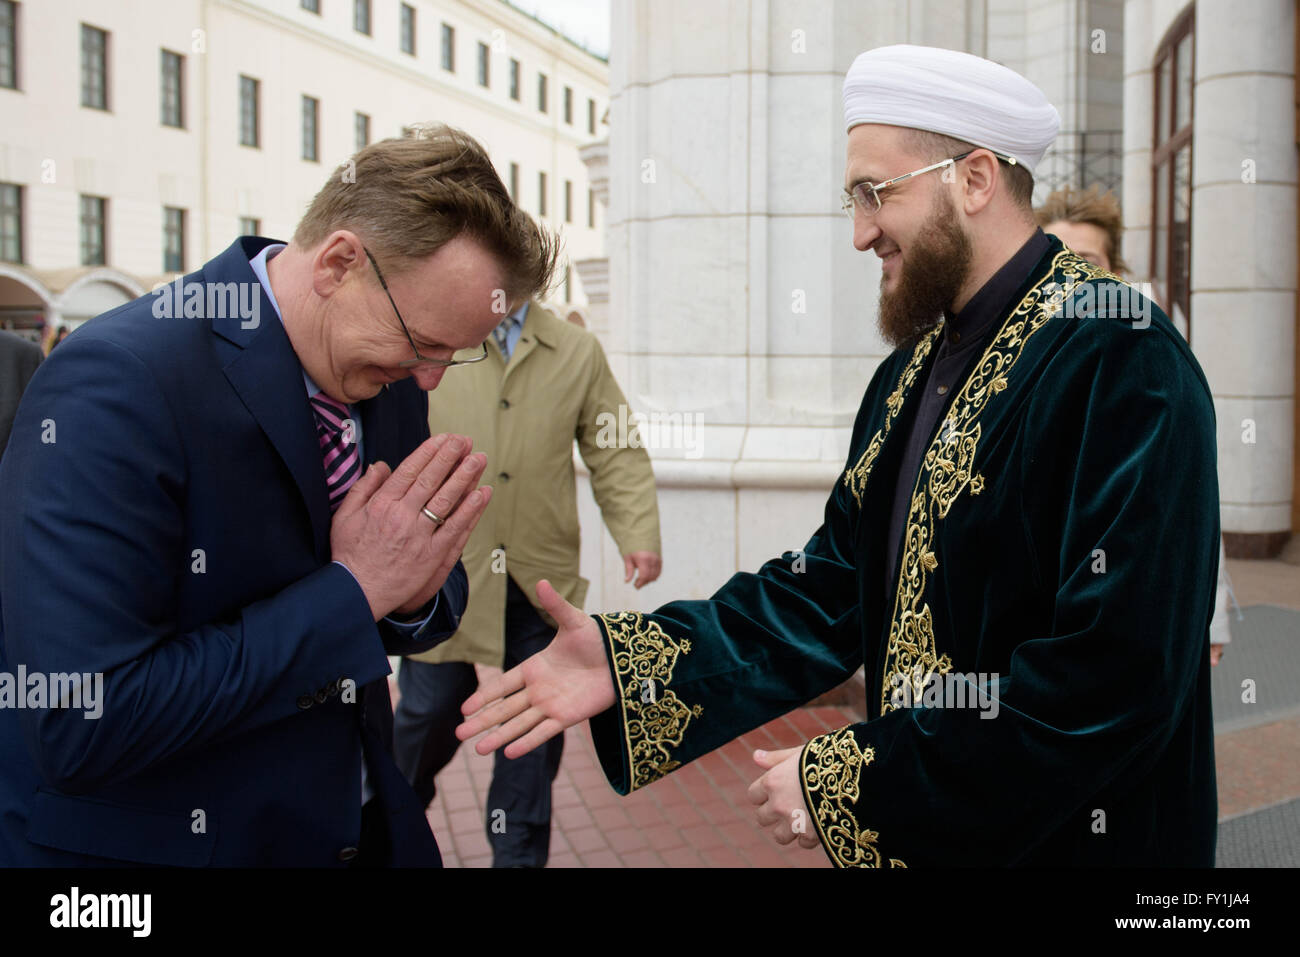 Kazan, Russia. 20th Apr, 2016. Thuringian State Premier Bodo Ramelow (L) meets with the Imam of the mosque, Ilfat Stock Photo